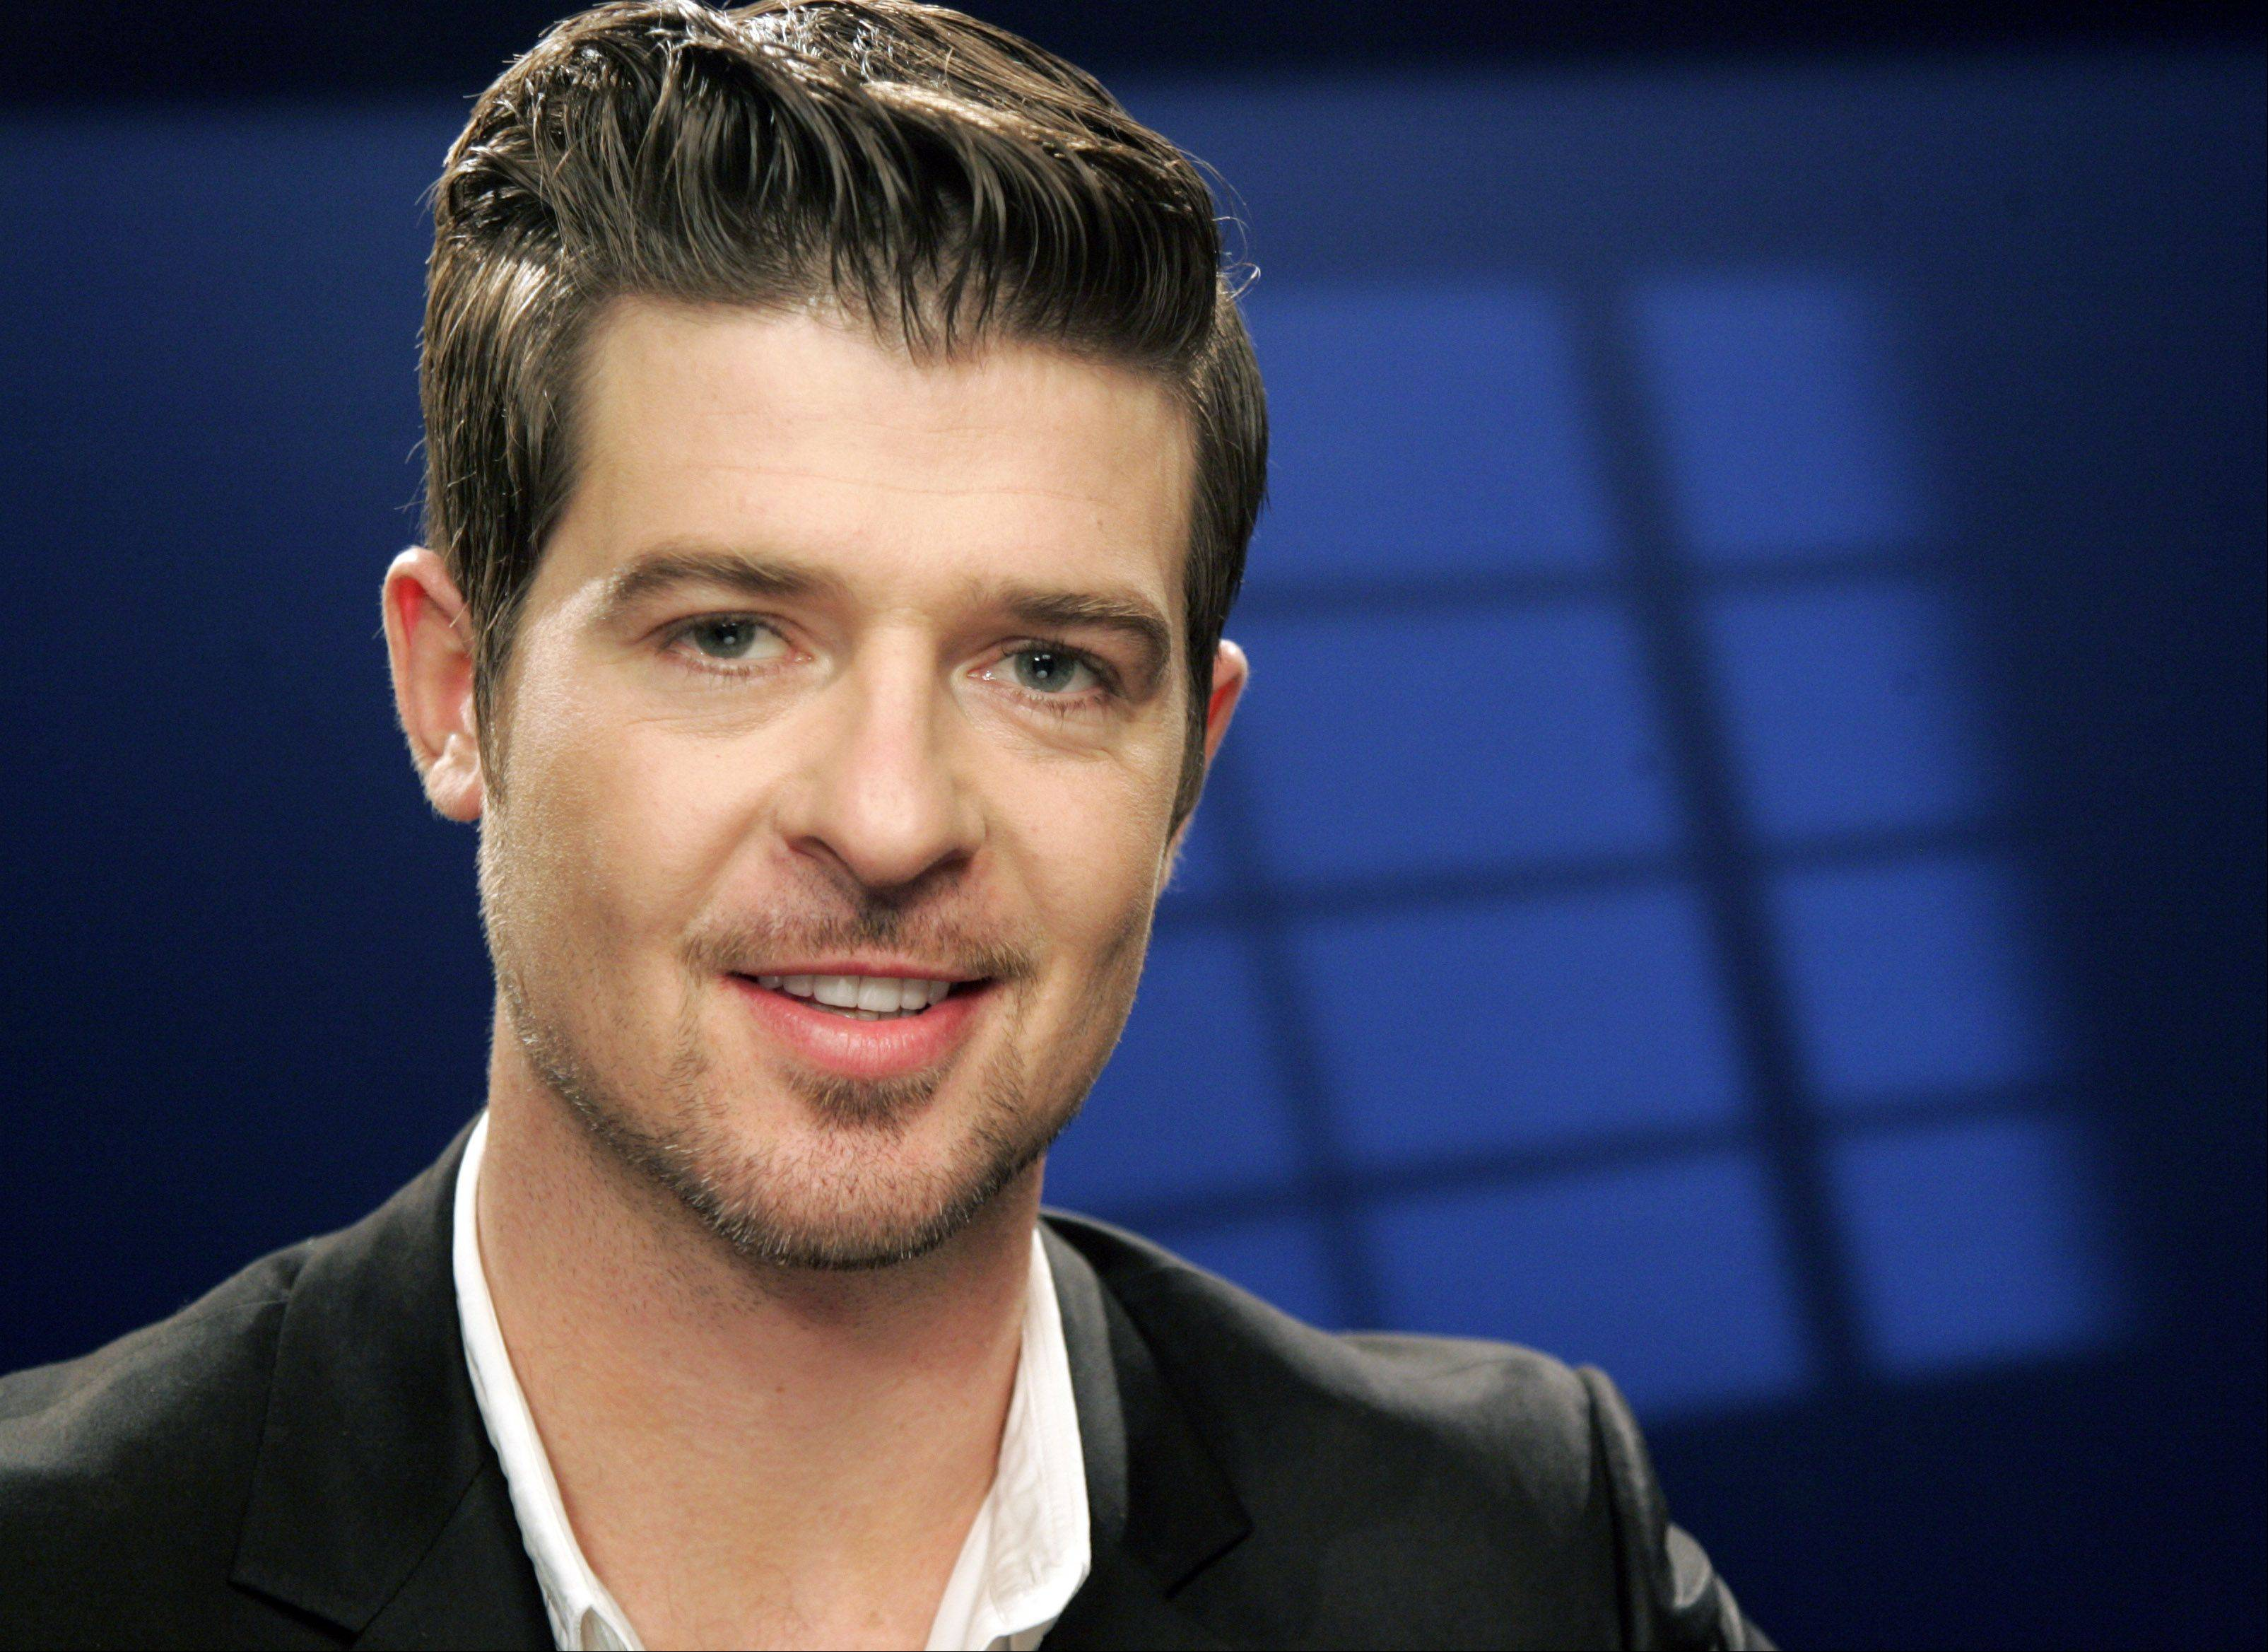 Robin Thicke is one the performers set for the 2013 Taste of Chicago.